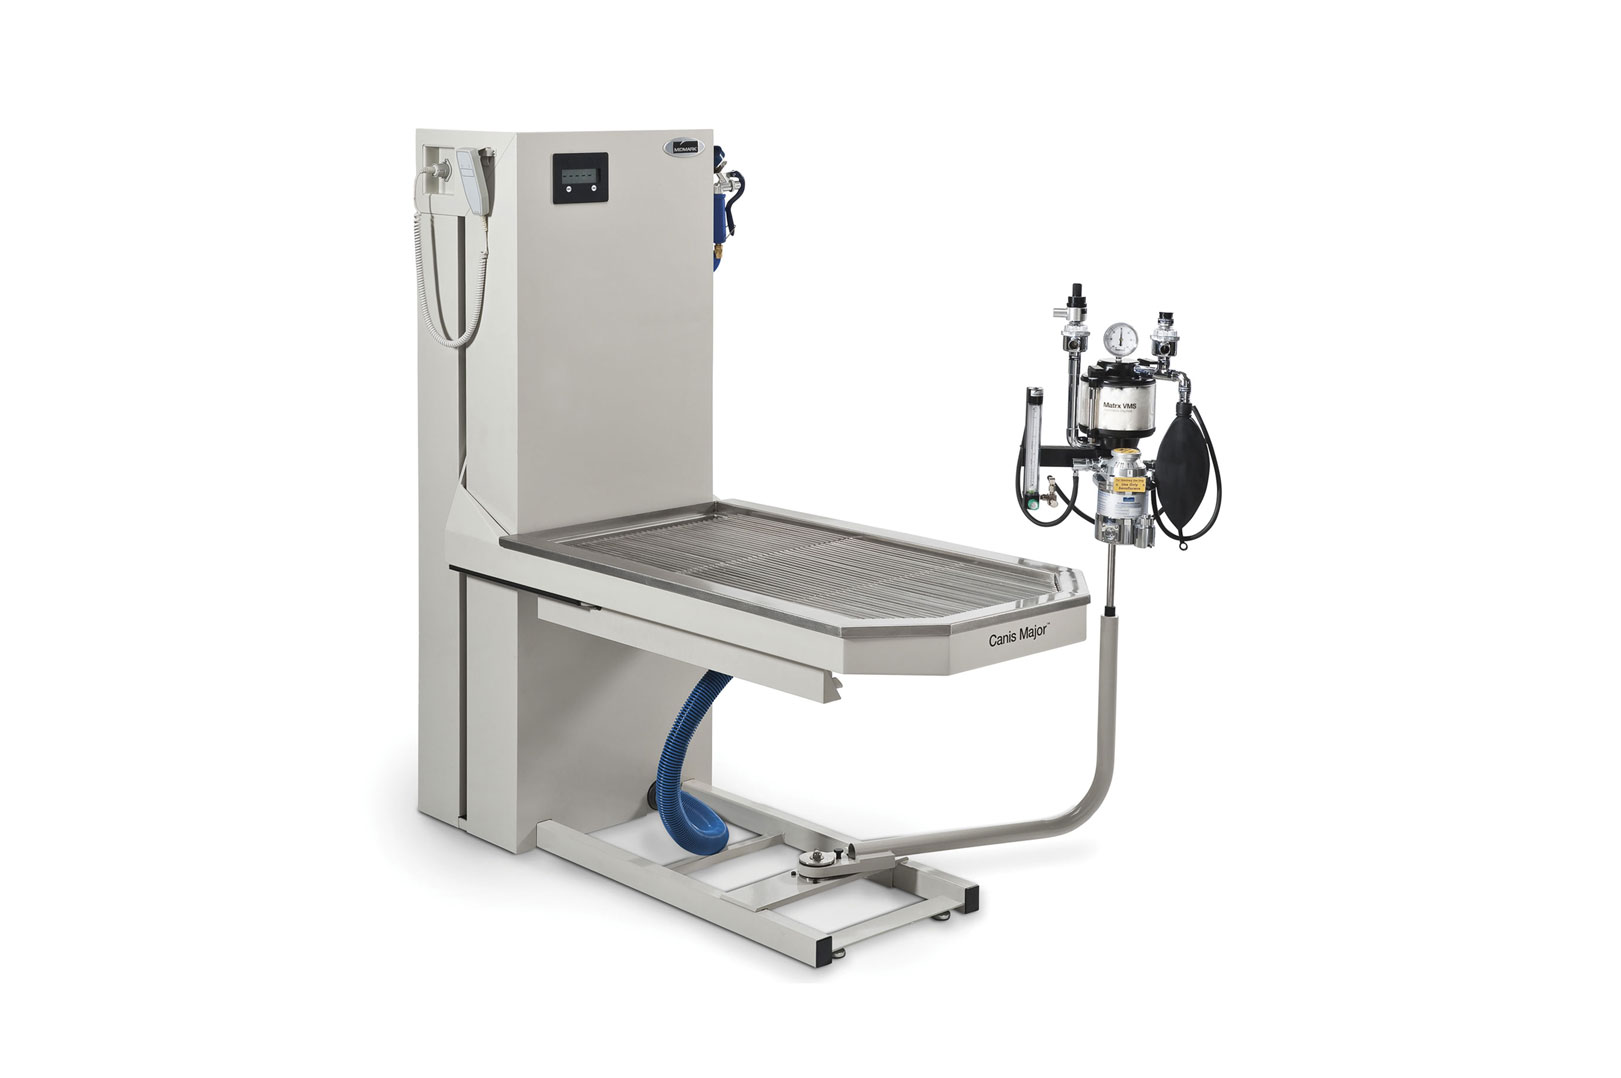 Midmark-VMS-and-VME2-with-Midmark-Wet-Lift-Table